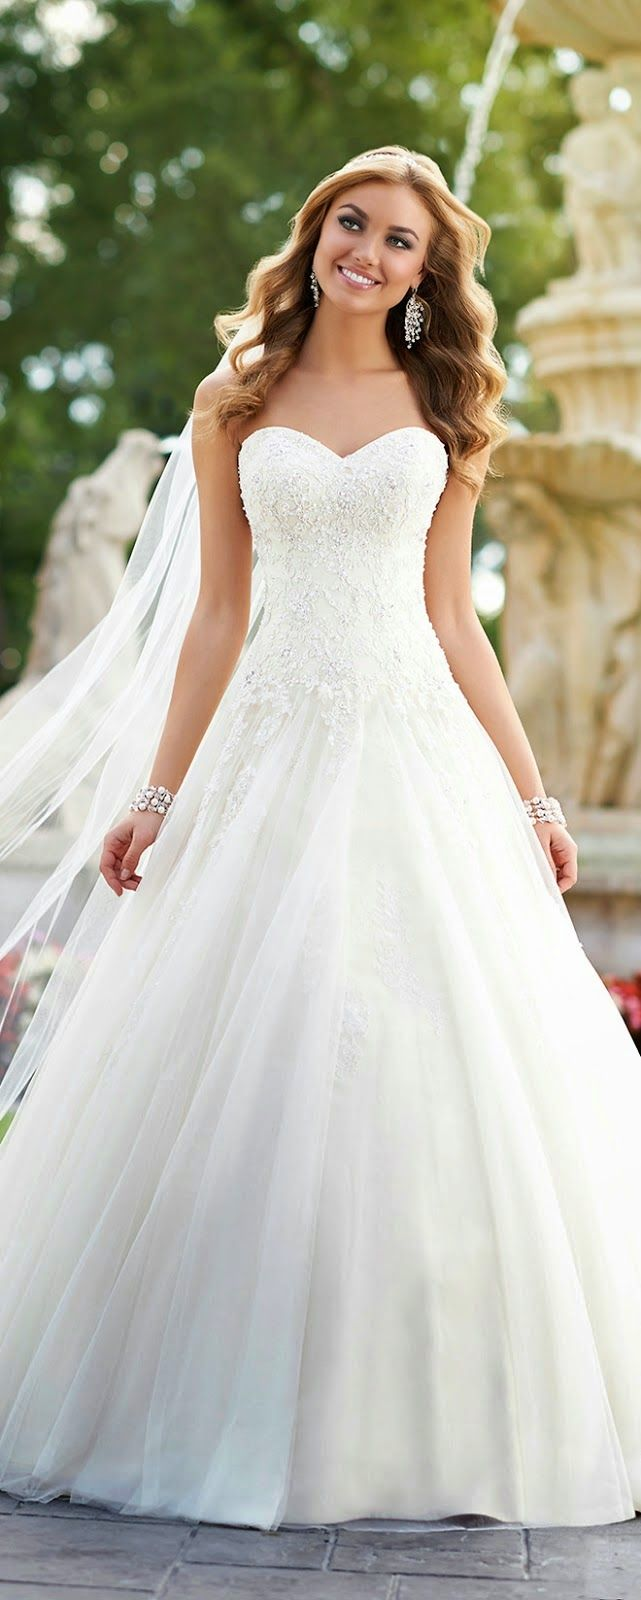 Wedding Dresses Archives | Belle, Wedding dress and Magazines